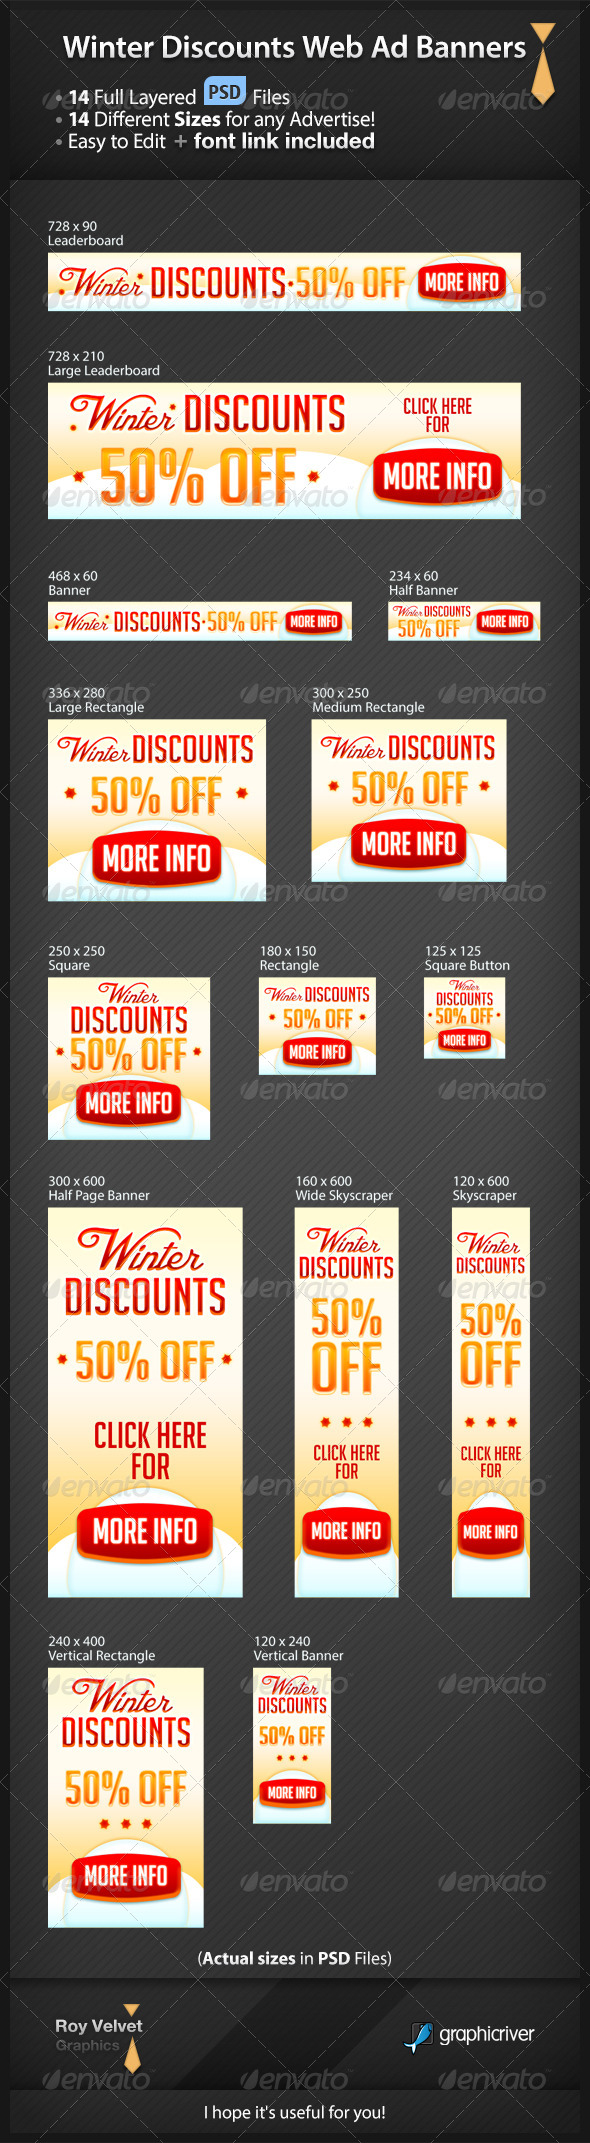 GraphicRiver Winter Discounts Web Ad Banners 6360635